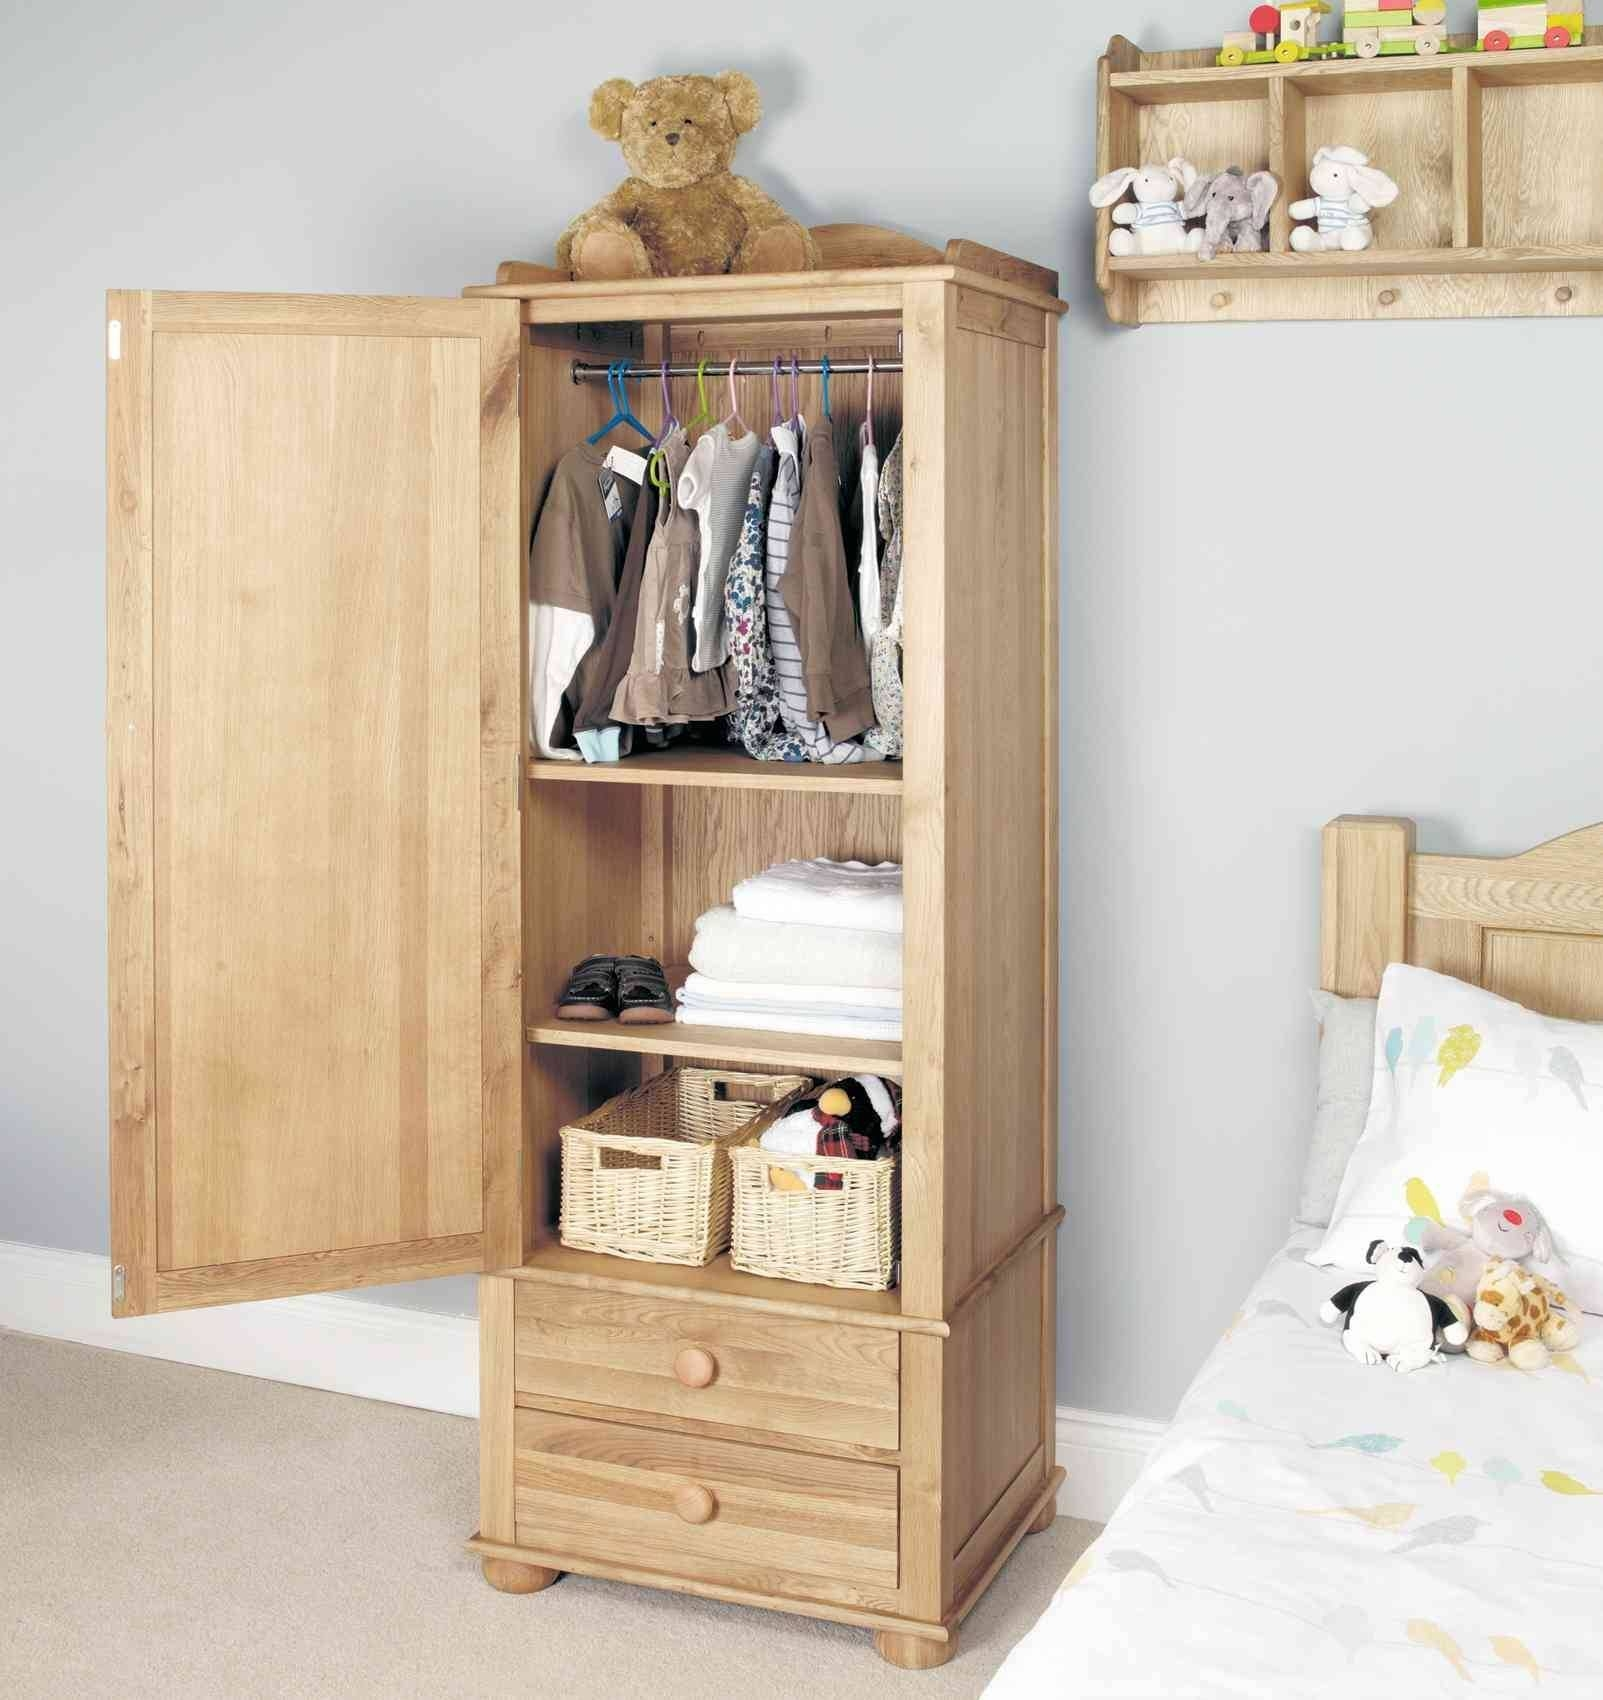 30 Best Childrens Wardrobes With Drawers And Shelves intended for Oak Wardrobe With Drawers And Shelves (Image 3 of 30)